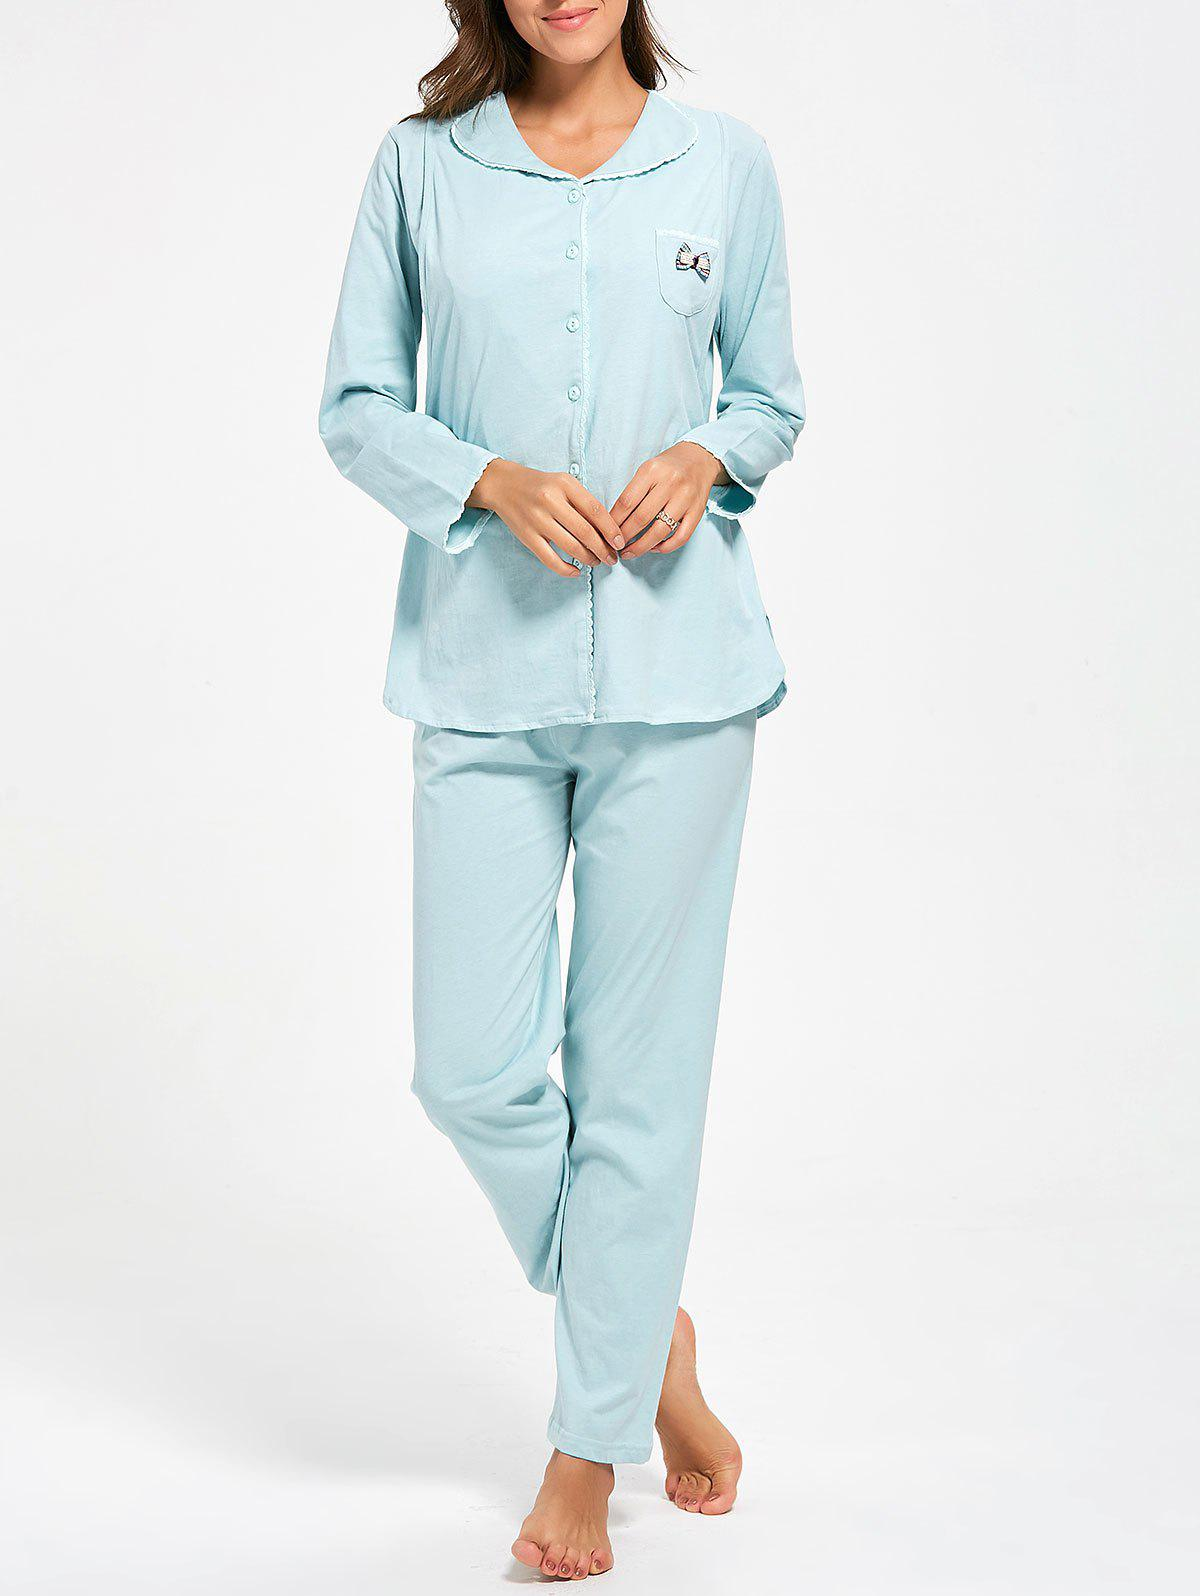 Cotton Button Up Nursing Pajamas Set - LIGHT BLUE M